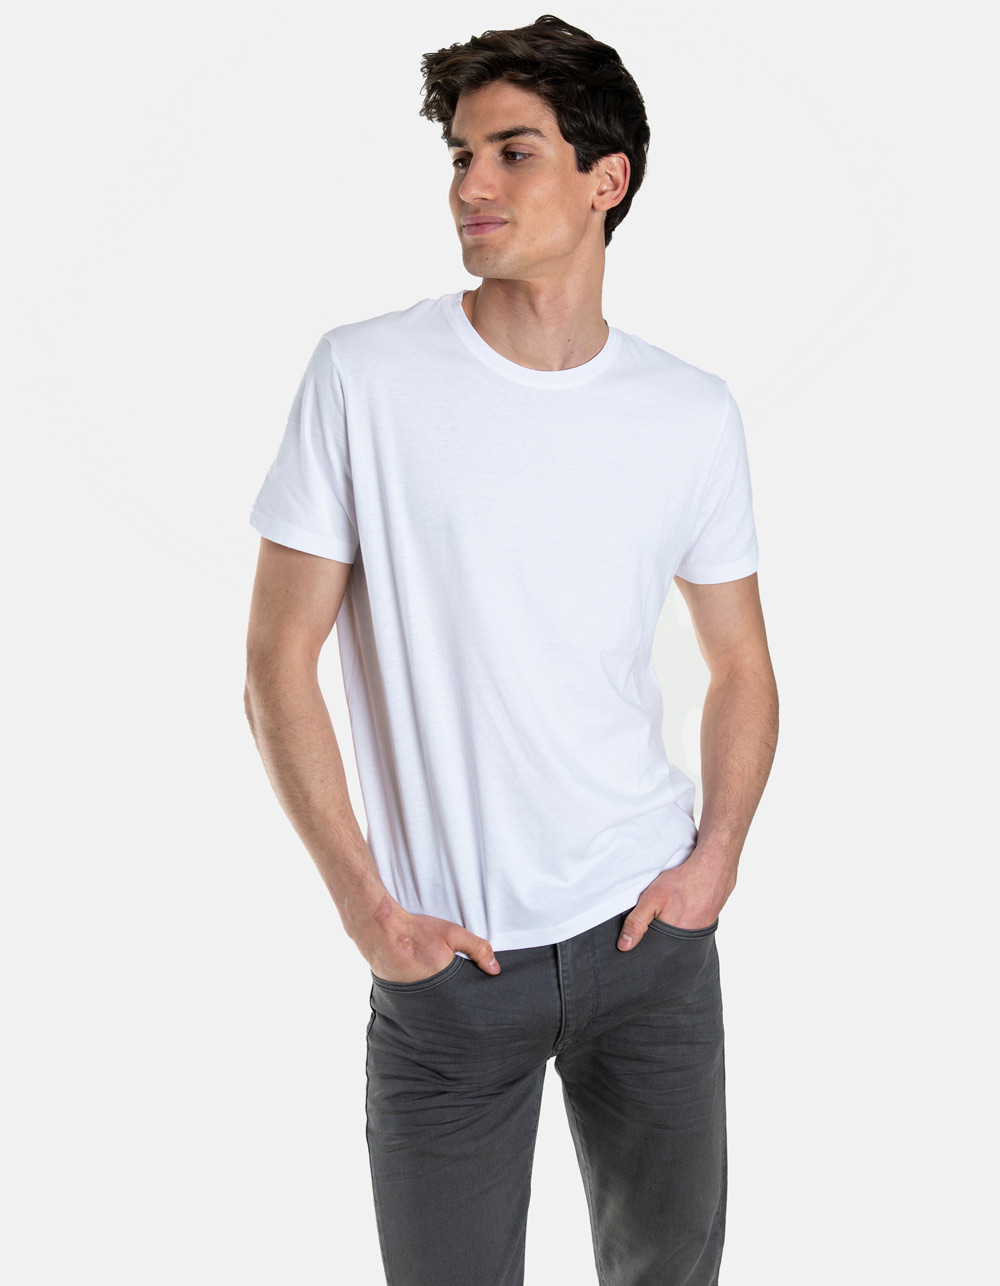 White round collar t-shirt